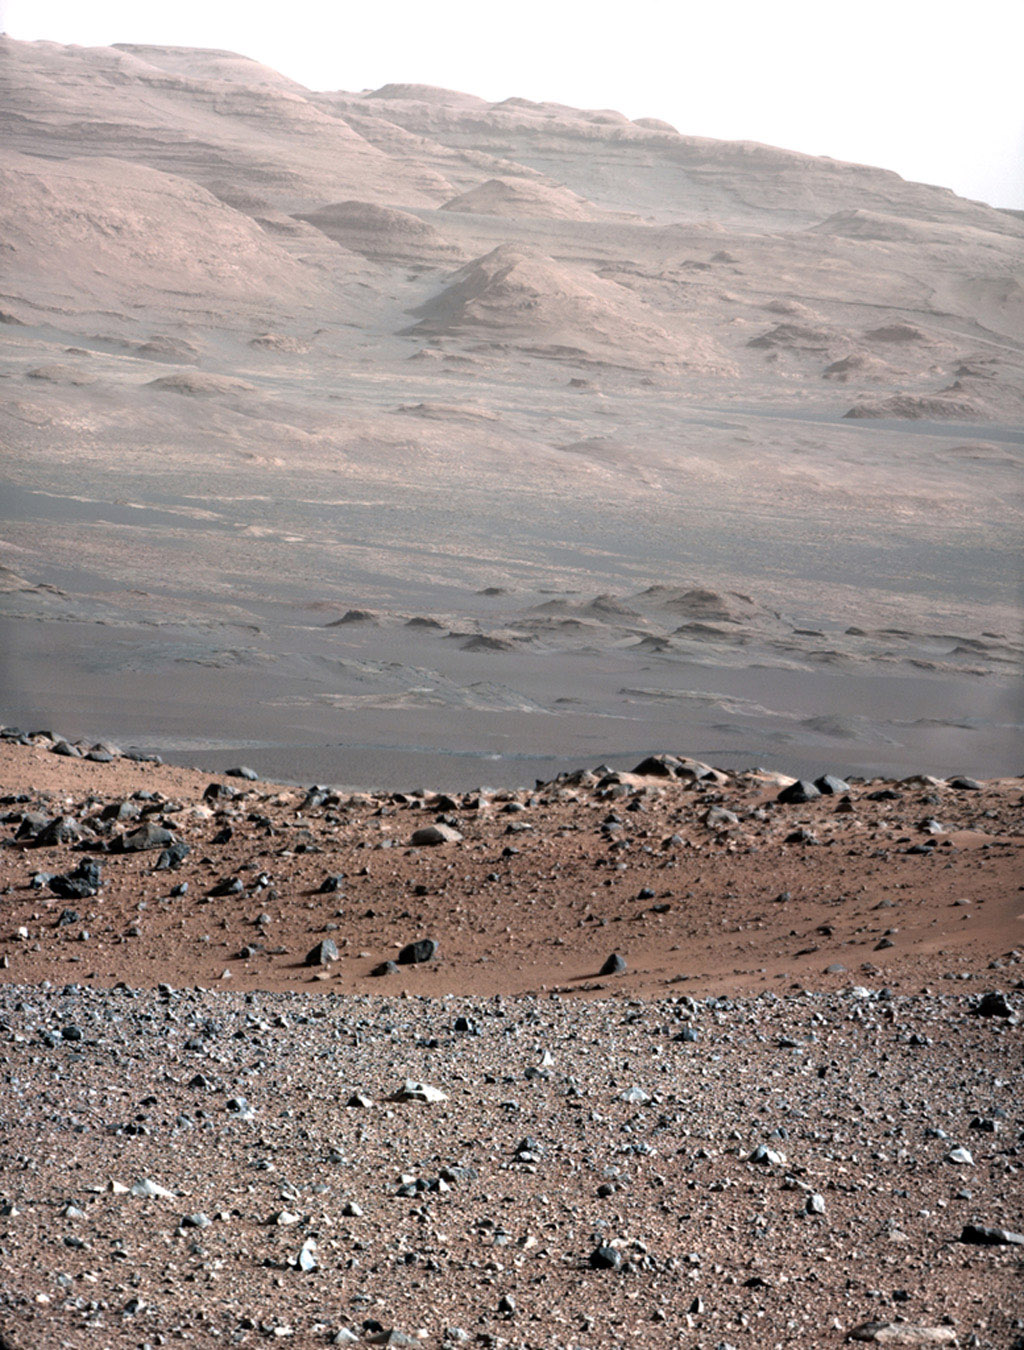 This image is from a test series used to chacterize the 100-millimeter Mast Camera on NASA's Curiosity rover. It was taken on Aug. 23, 2012, and looks south-southwest from the rover's landing site.